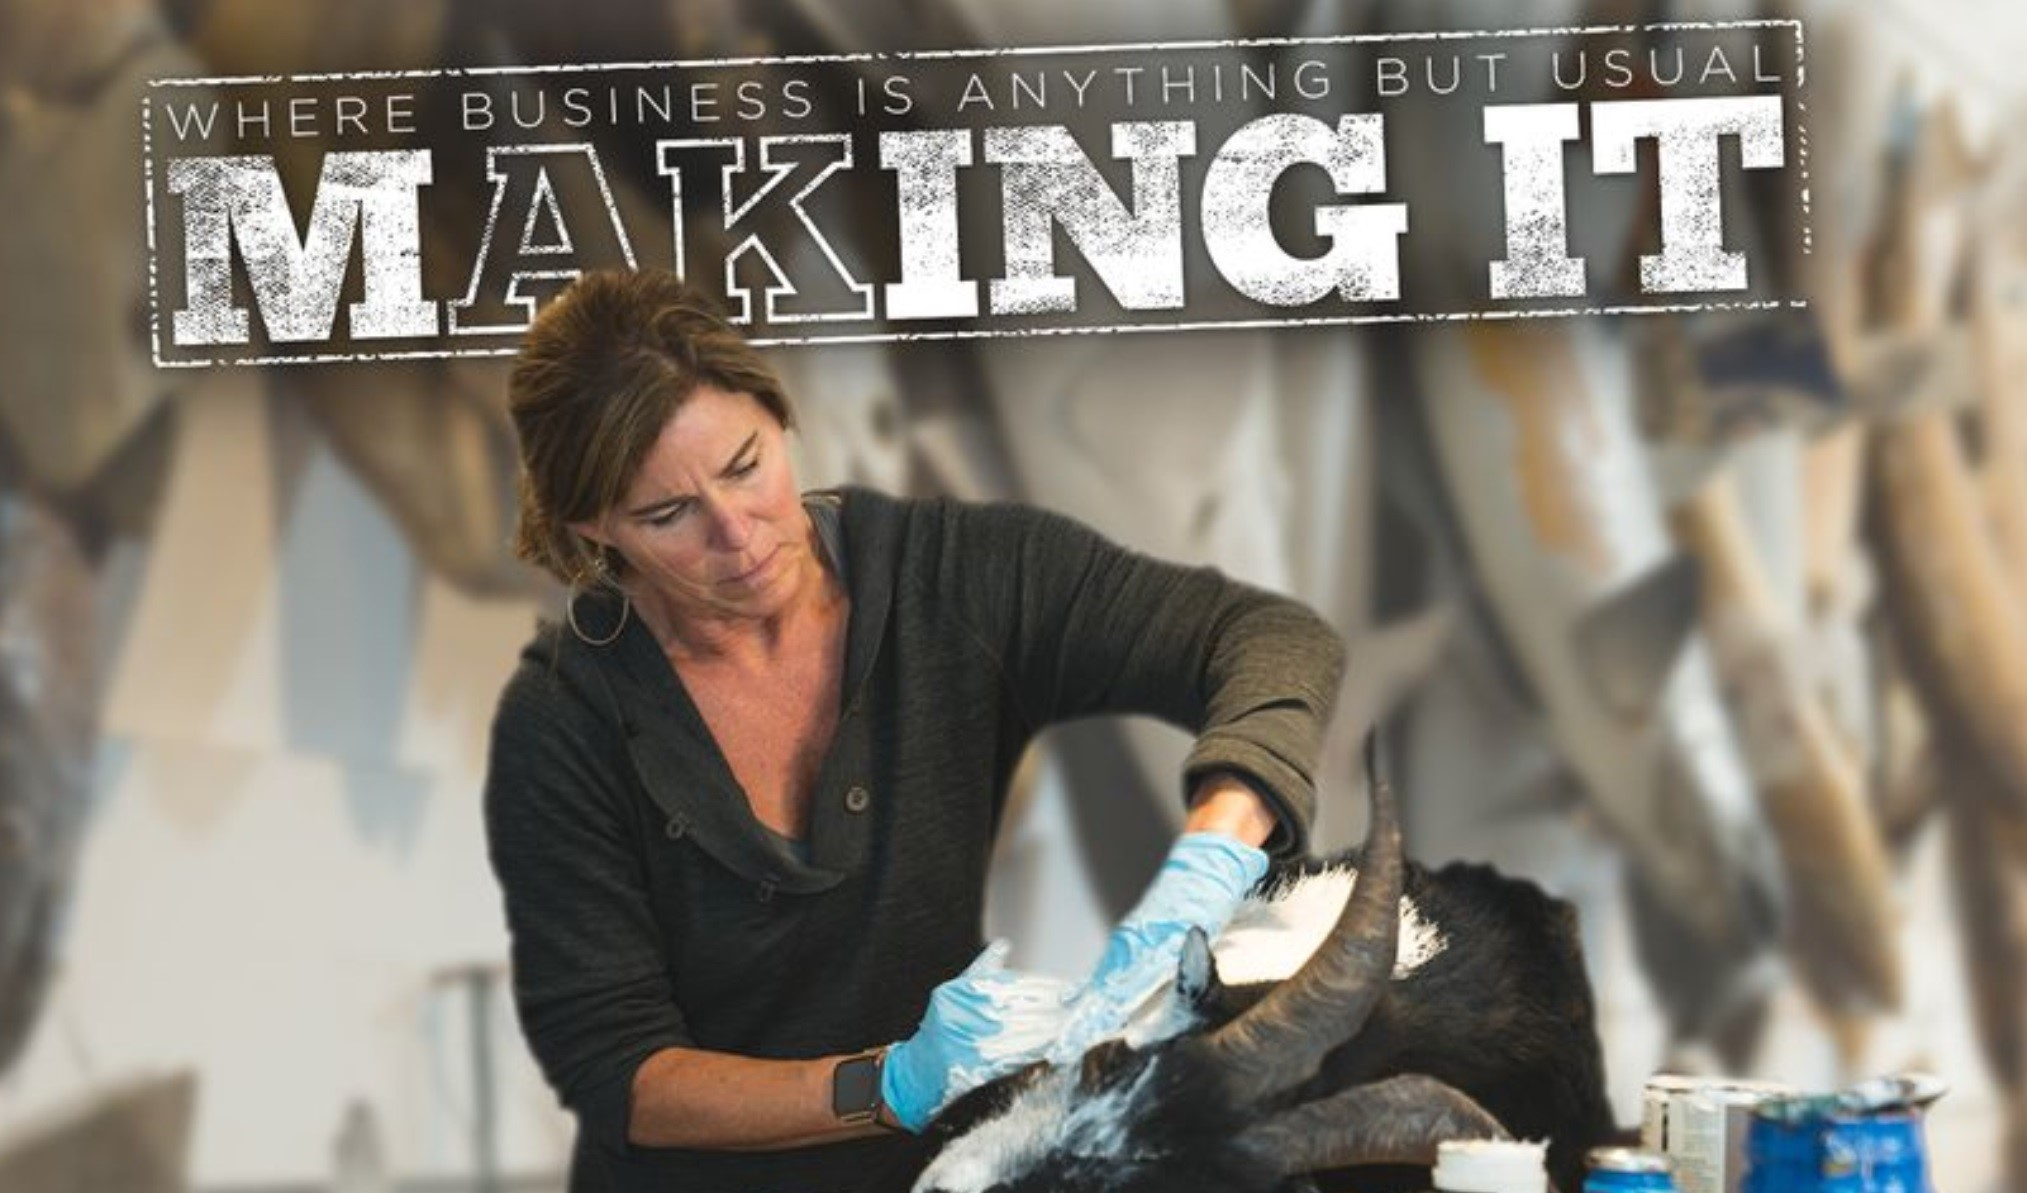 PAINTING DEAD ANIMALS  - Alaskan artist Romney Dodd is blowing up, and First National Bank of Alaska features her with our images.